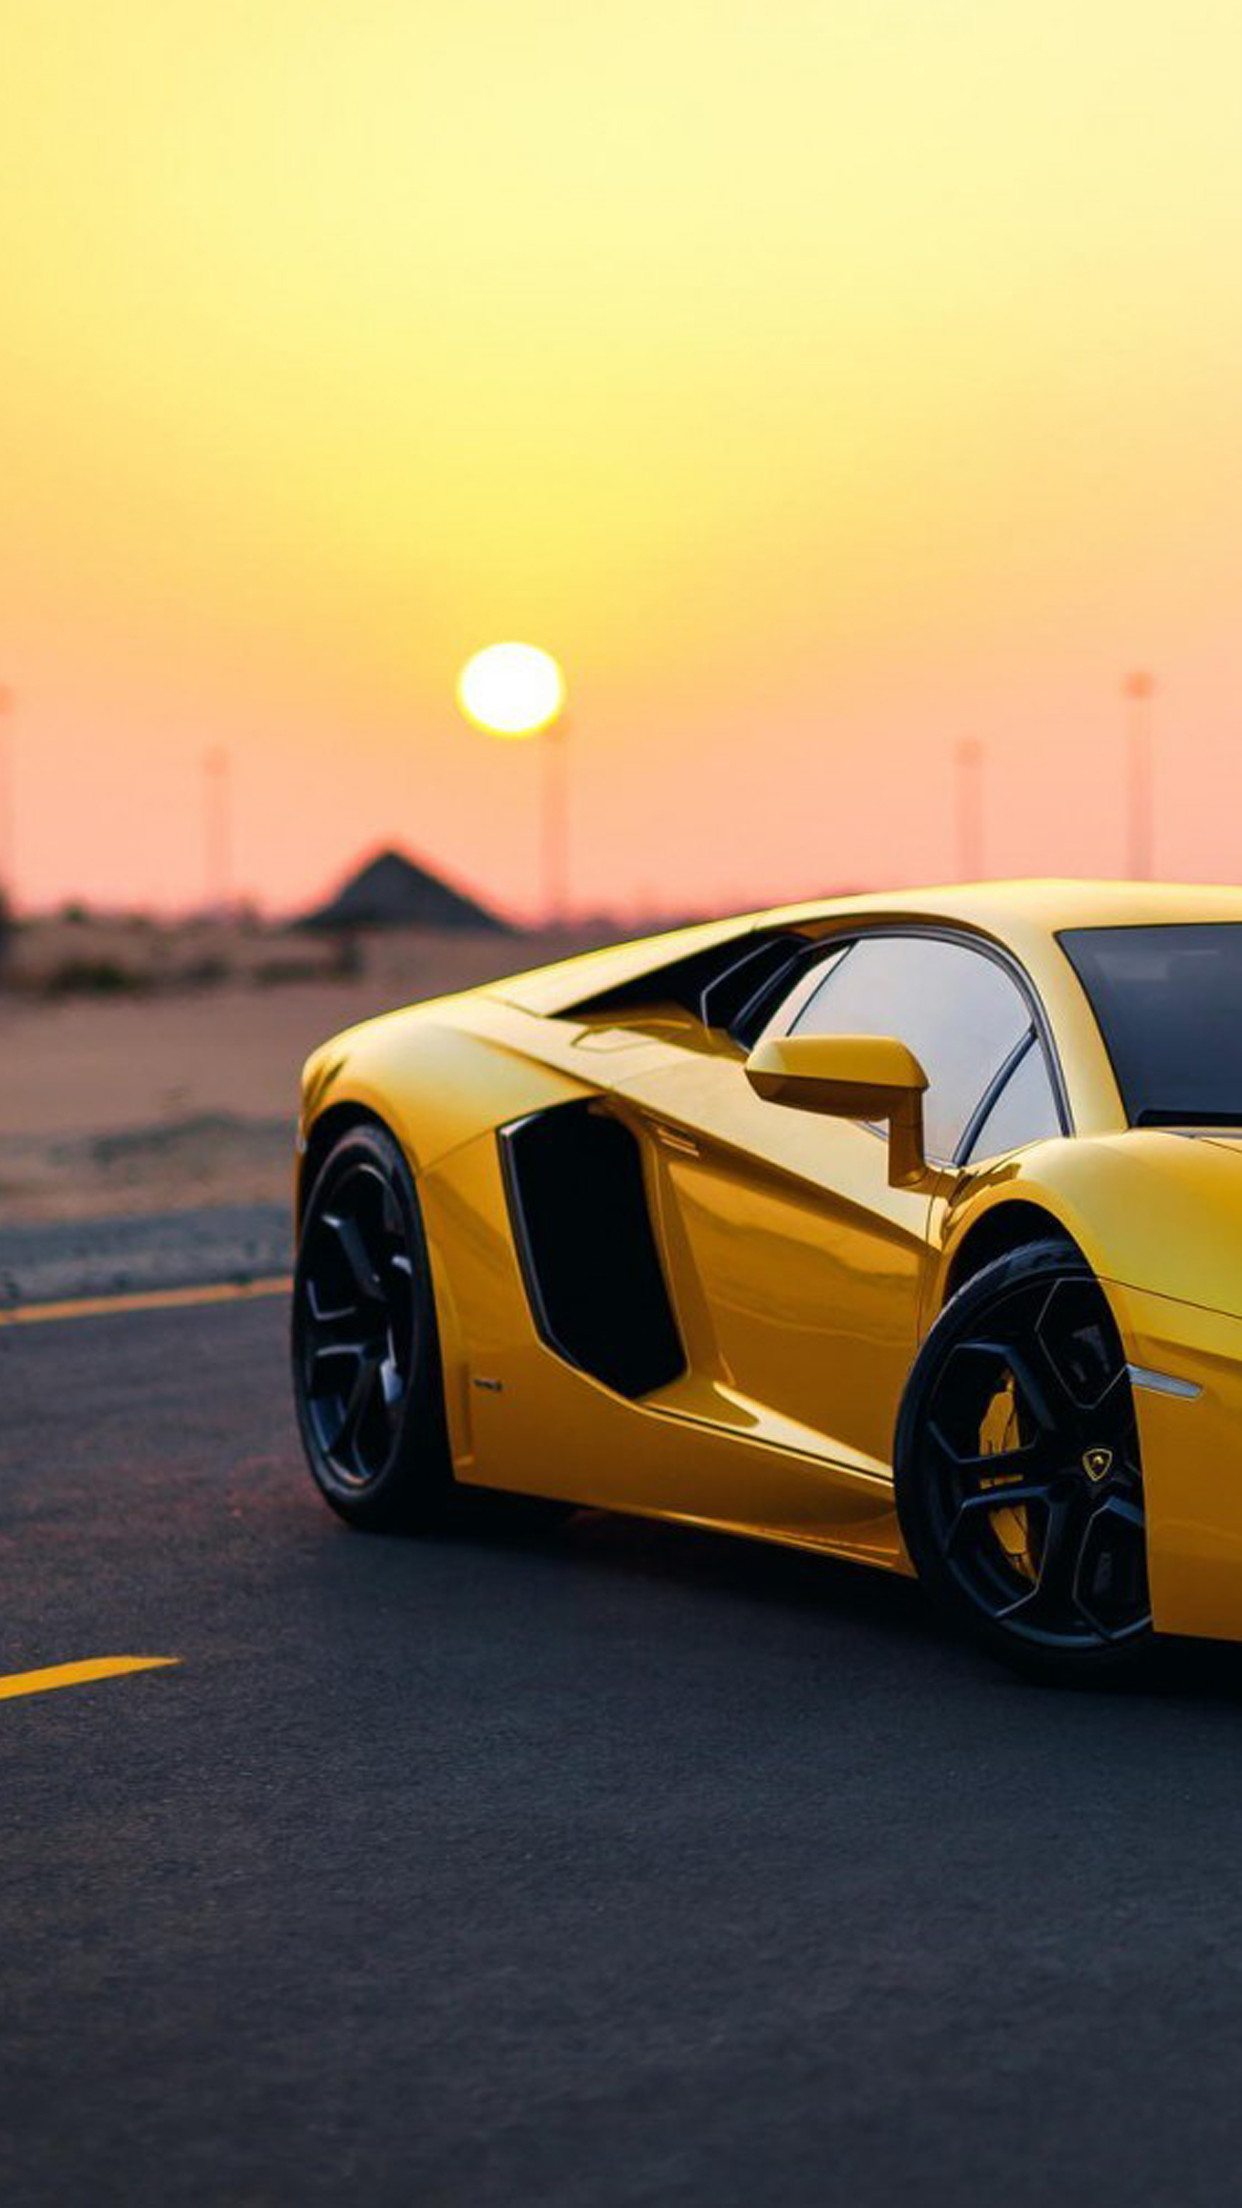 Car Wallpaper For Mobile Phone Hd Wallpaper Supercars 67 Images